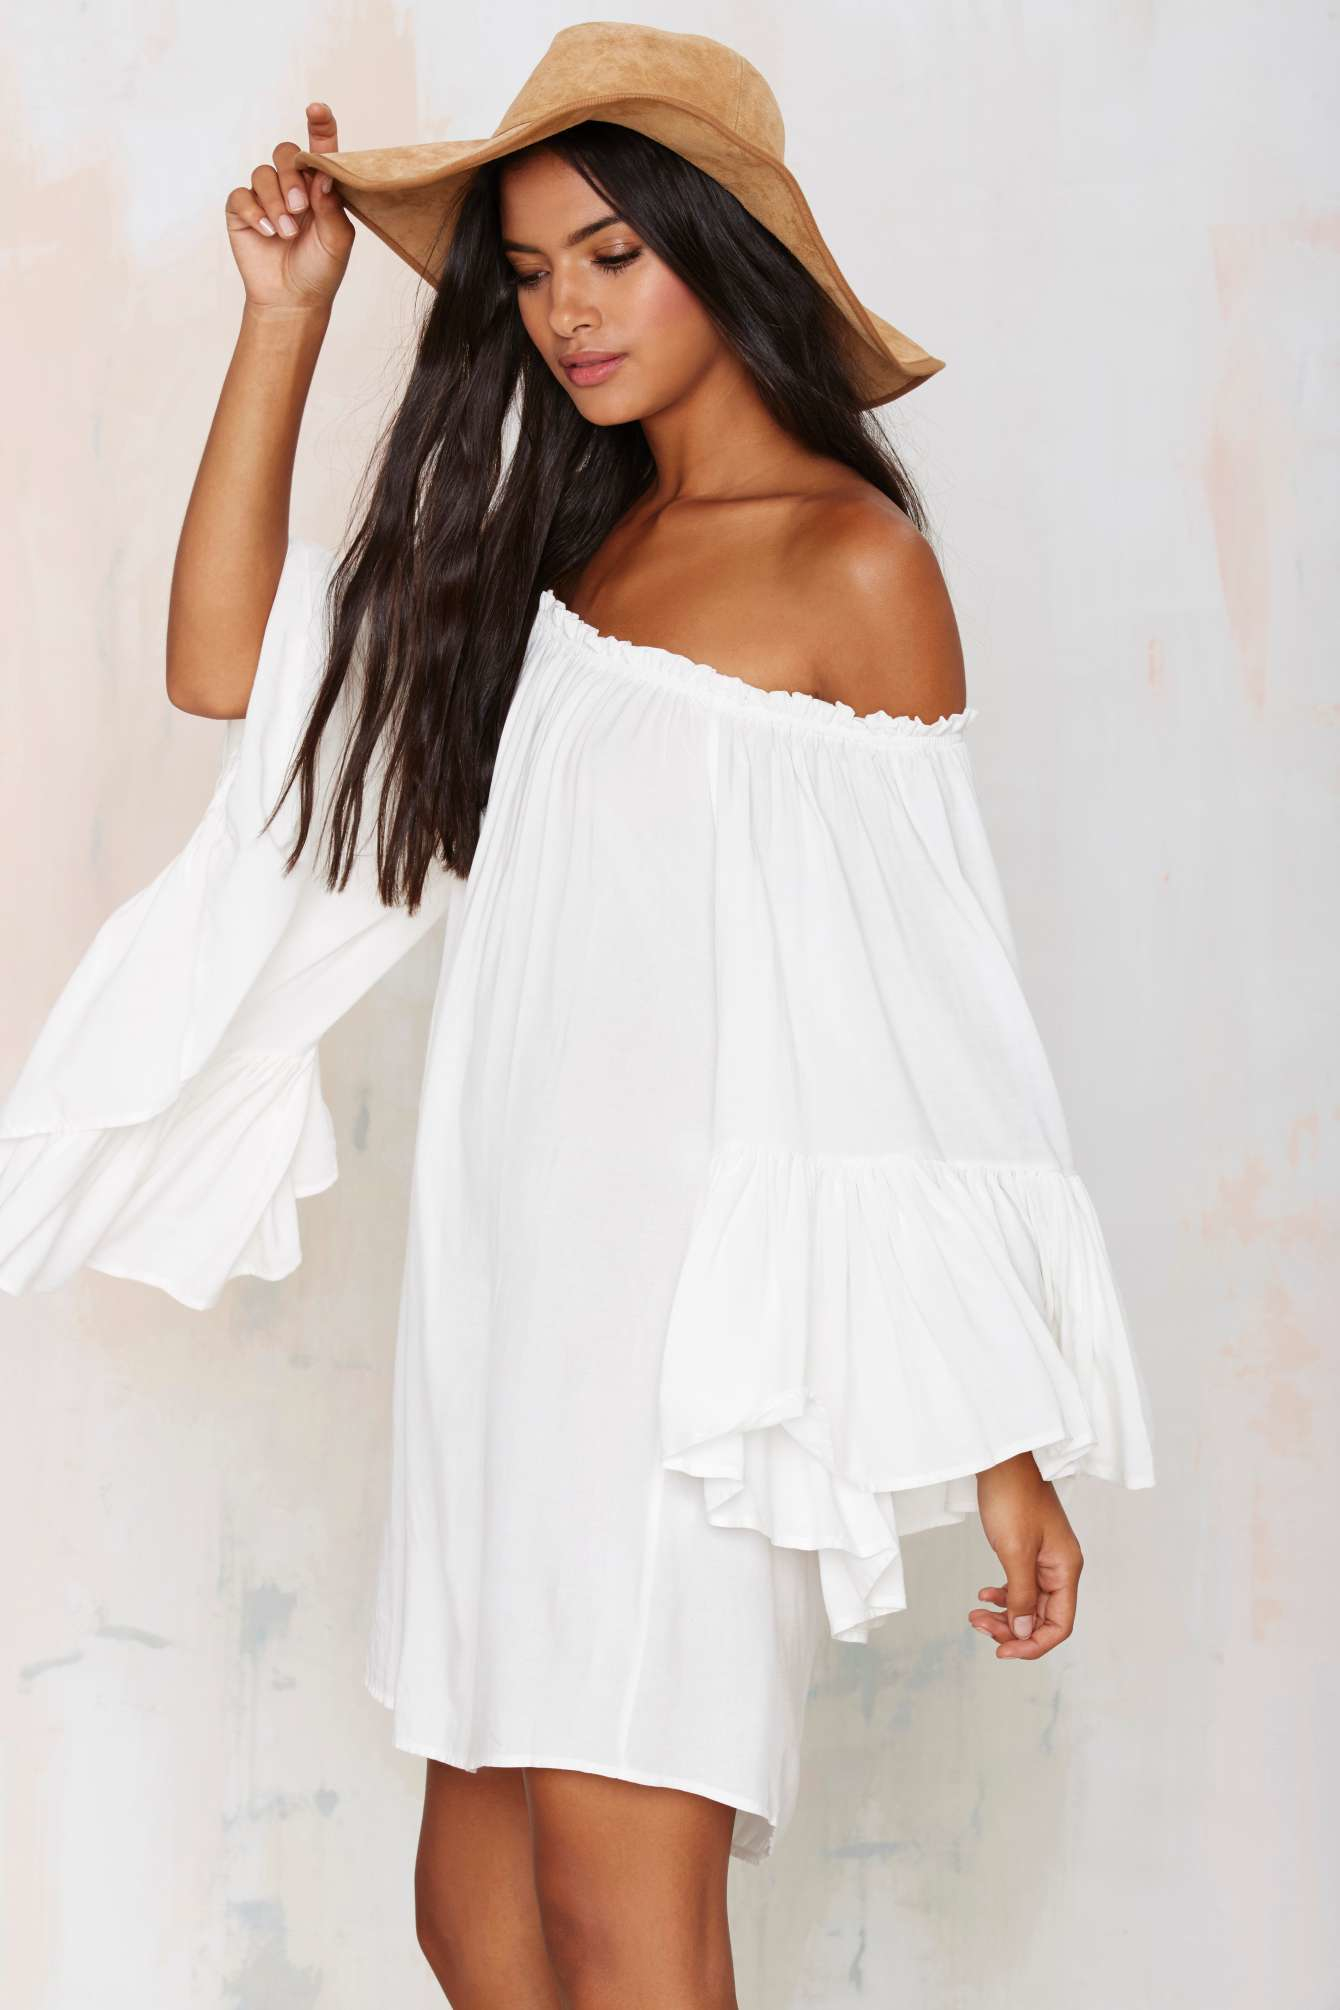 Lyst - Nasty Gal On The Move Off-the-shoulder Dress in White 4cf300412